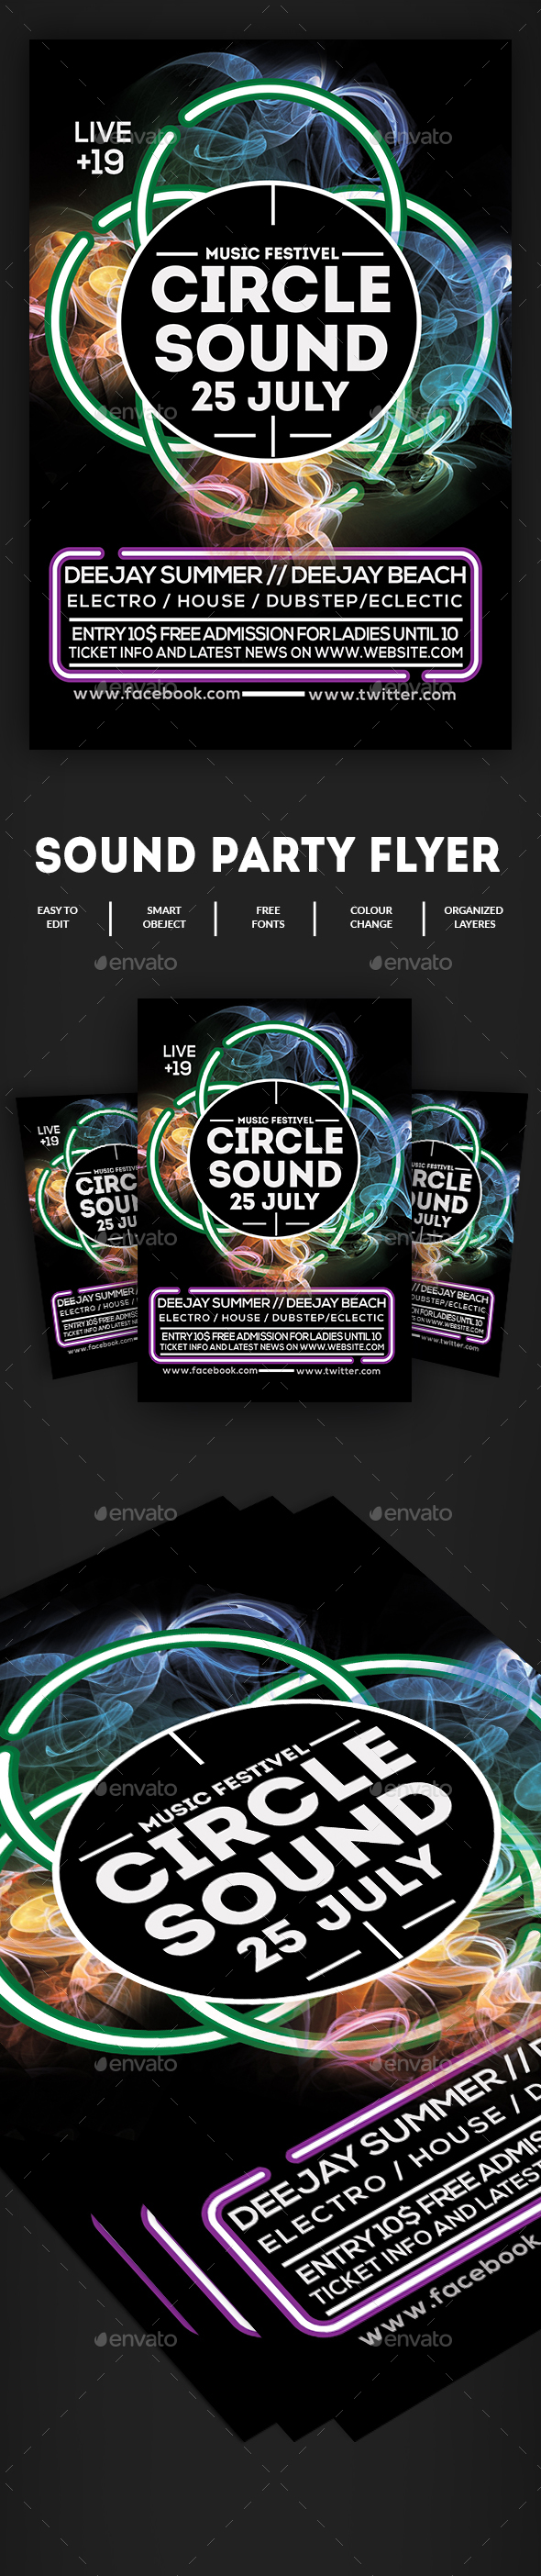 Circle Sound Flyer Template - Clubs & Parties Events